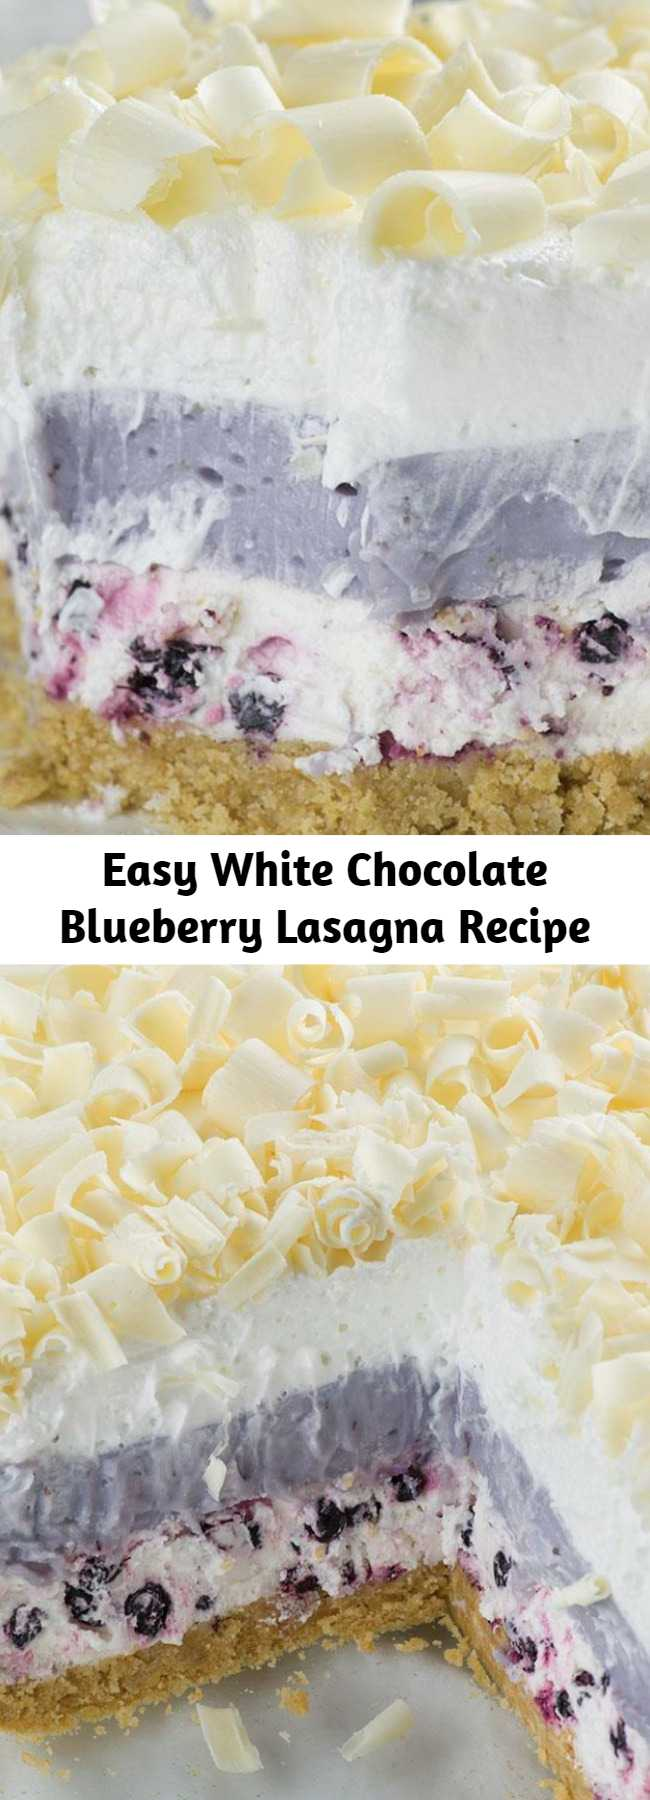 Easy White Chocolate Blueberry Lasagna Recipe - White Chocolate Blueberry Lasagna is perfect summer dessert recipe- light, easy and no oven required!!!